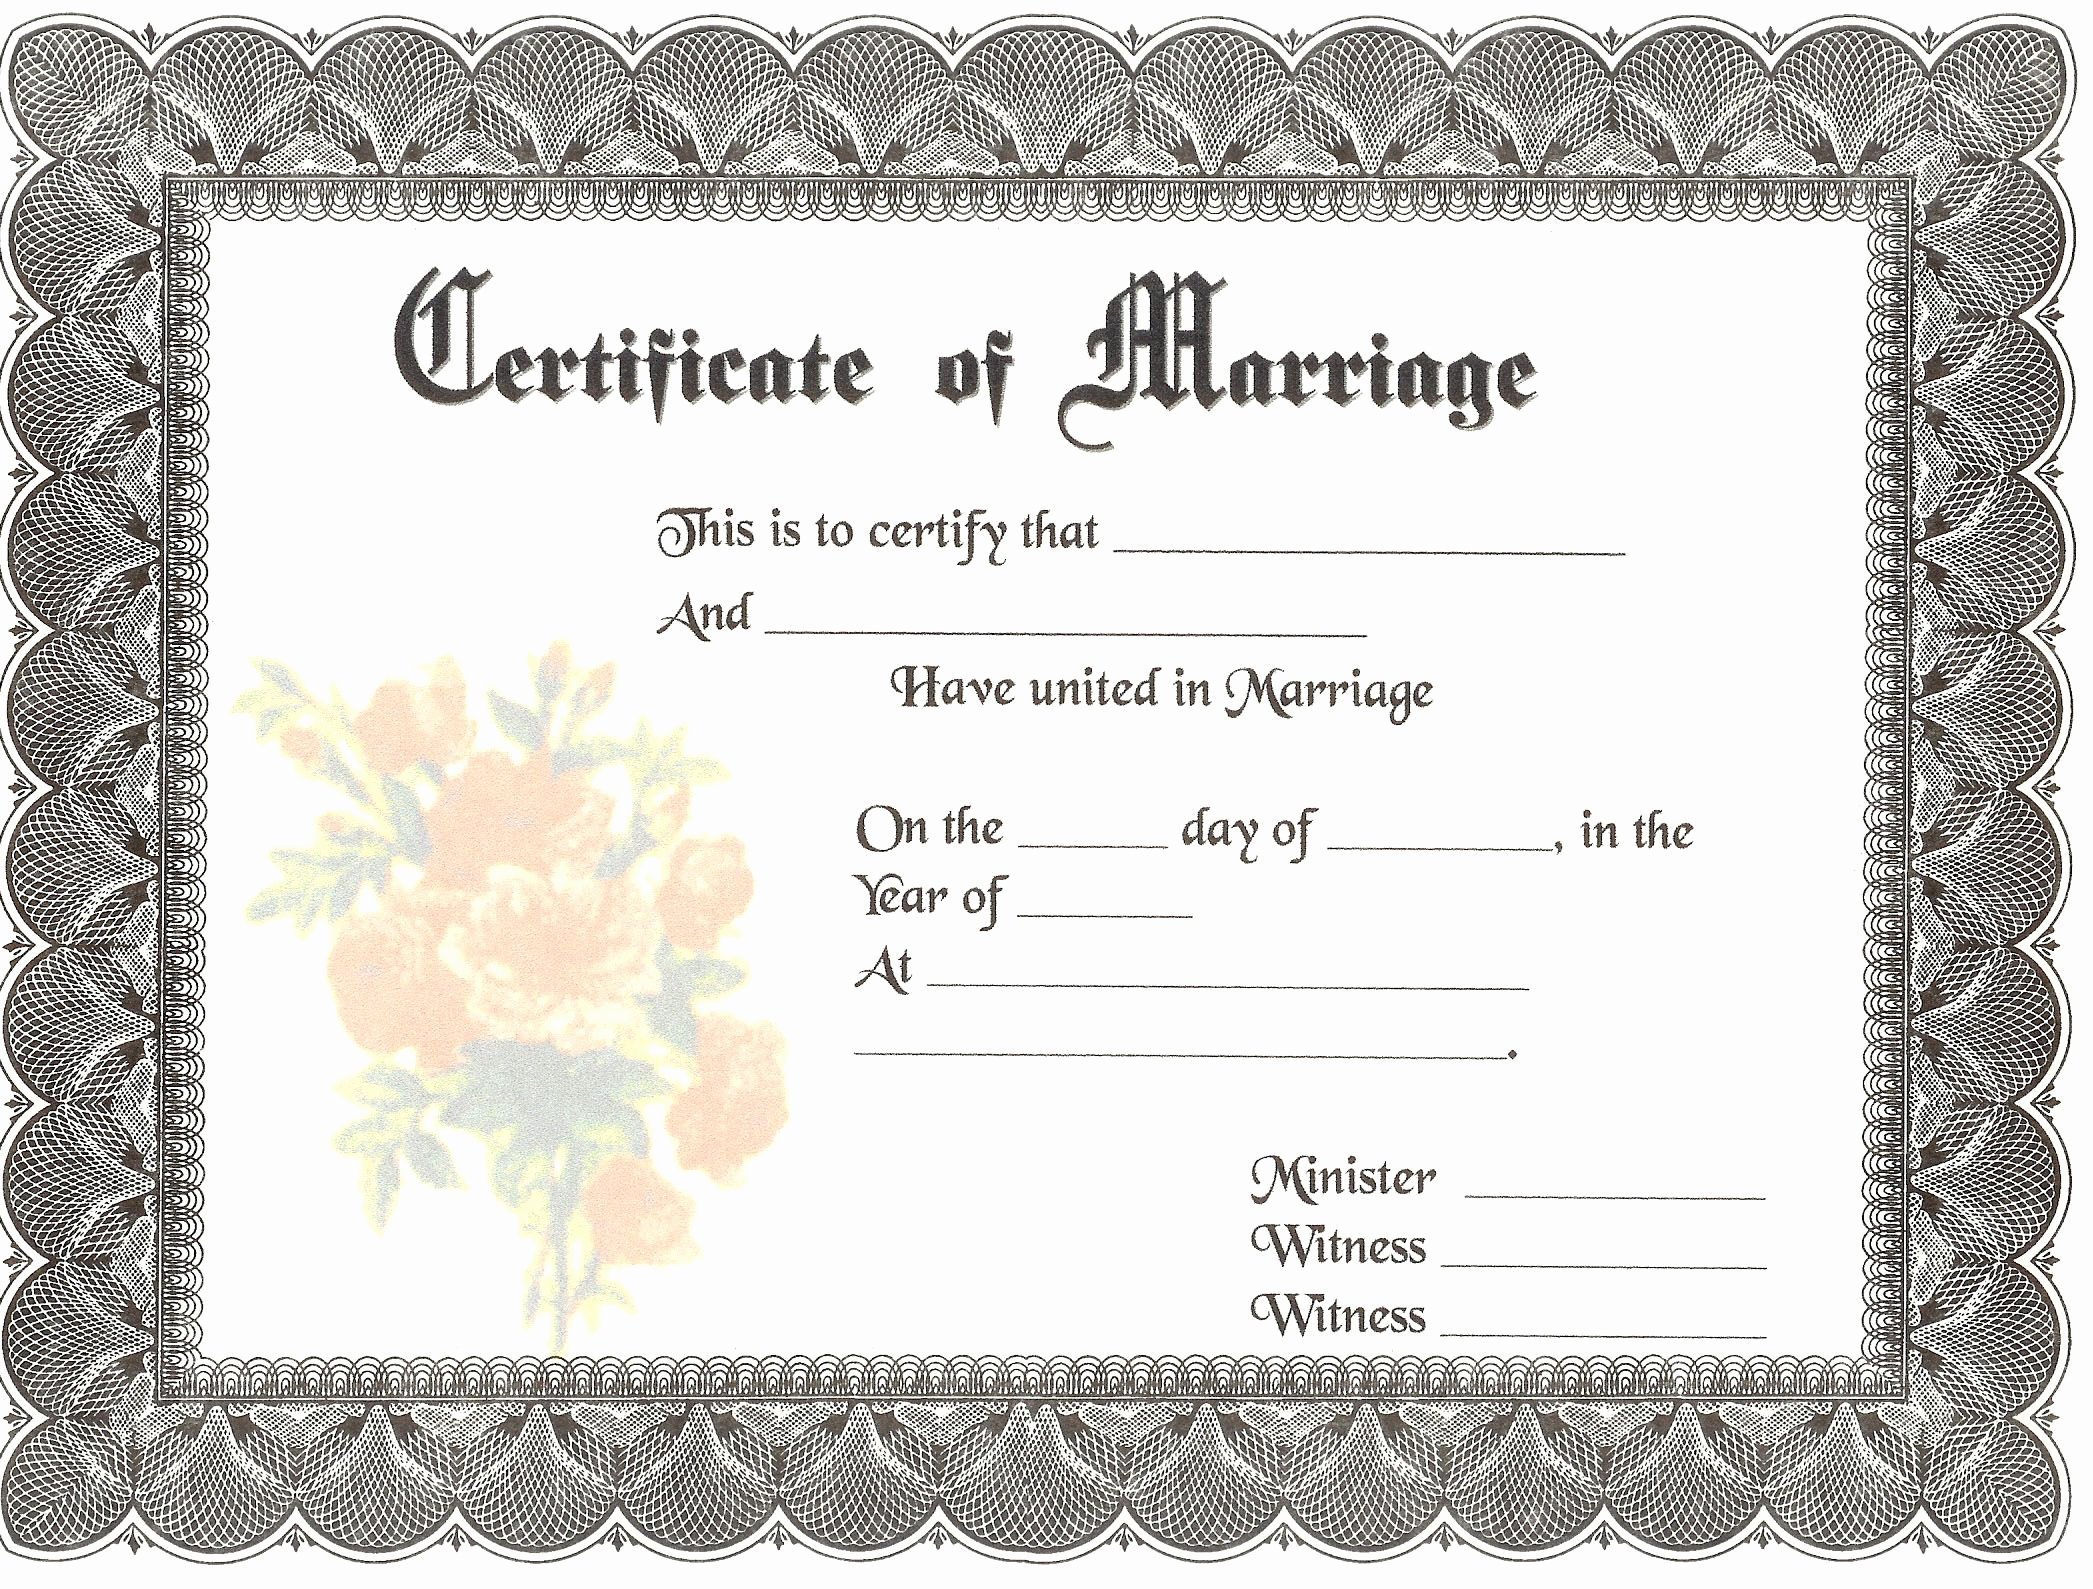 Blank Marriage Certificate Template Best Of Blank Marriage Certificates